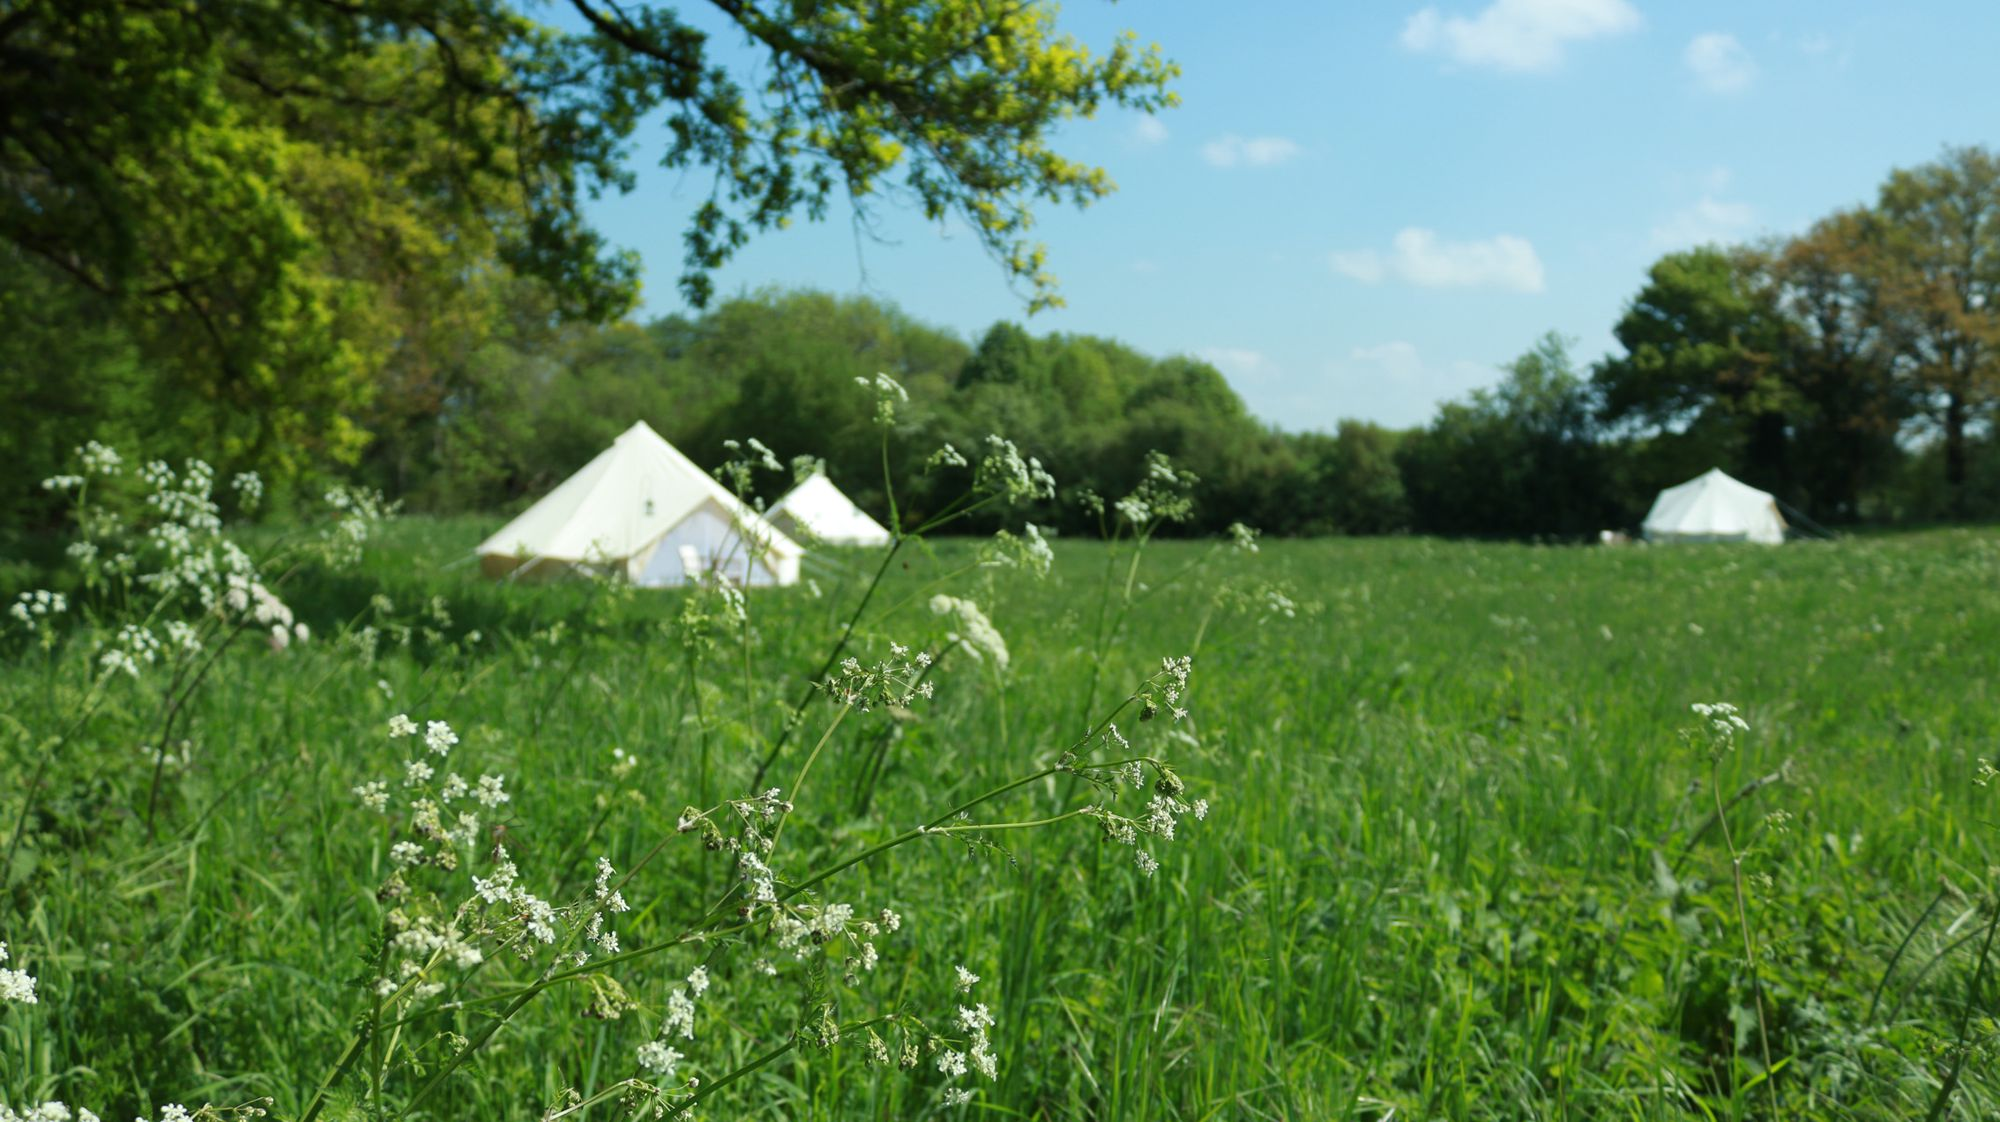 Glamping in Creuse holidays at Glampingly